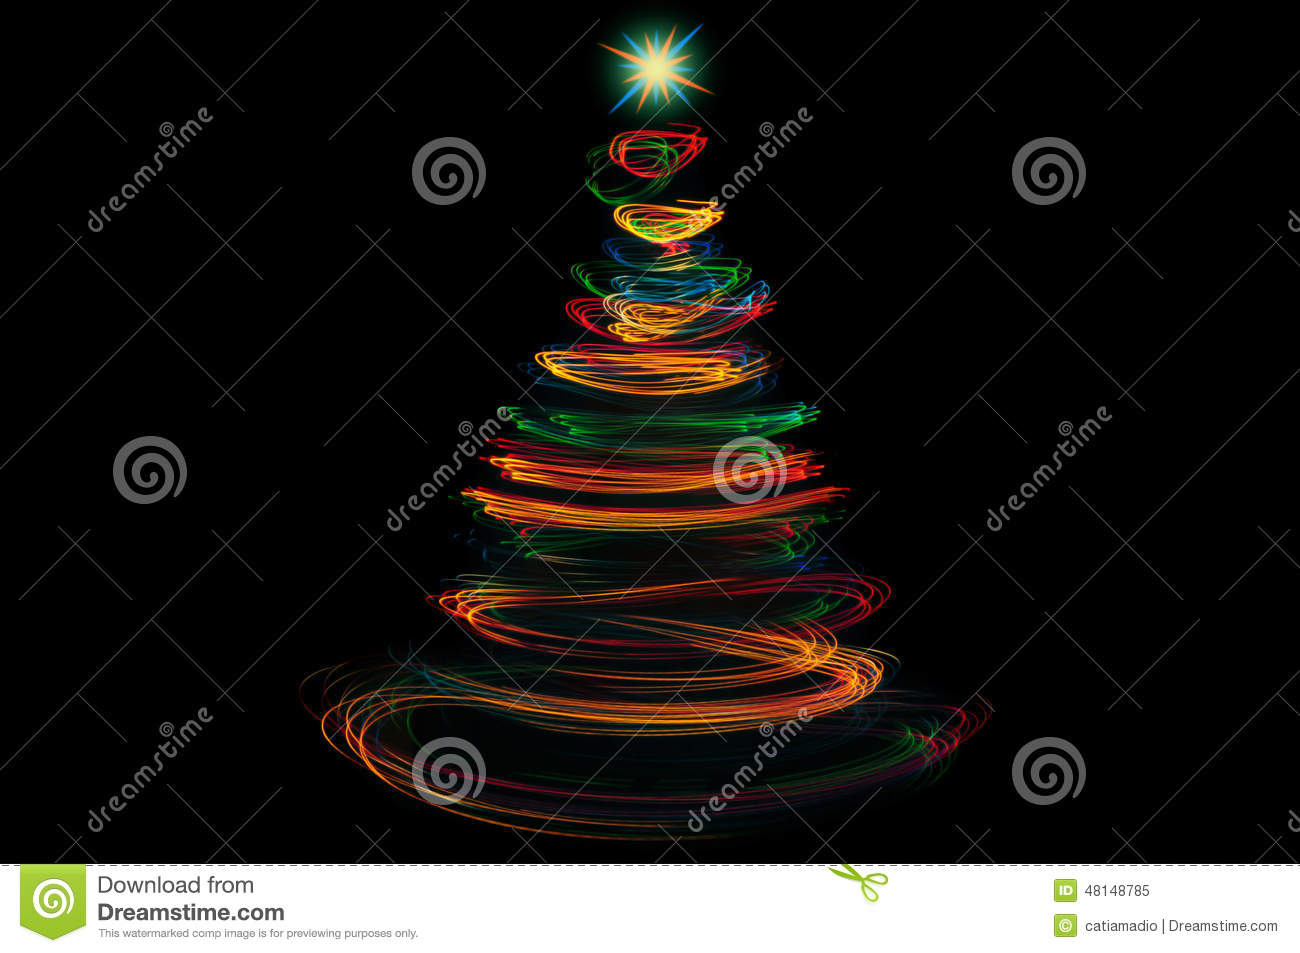 Colorful Christmas Tree Light Painting Stock Image Image Of Forming Holidays 48148785